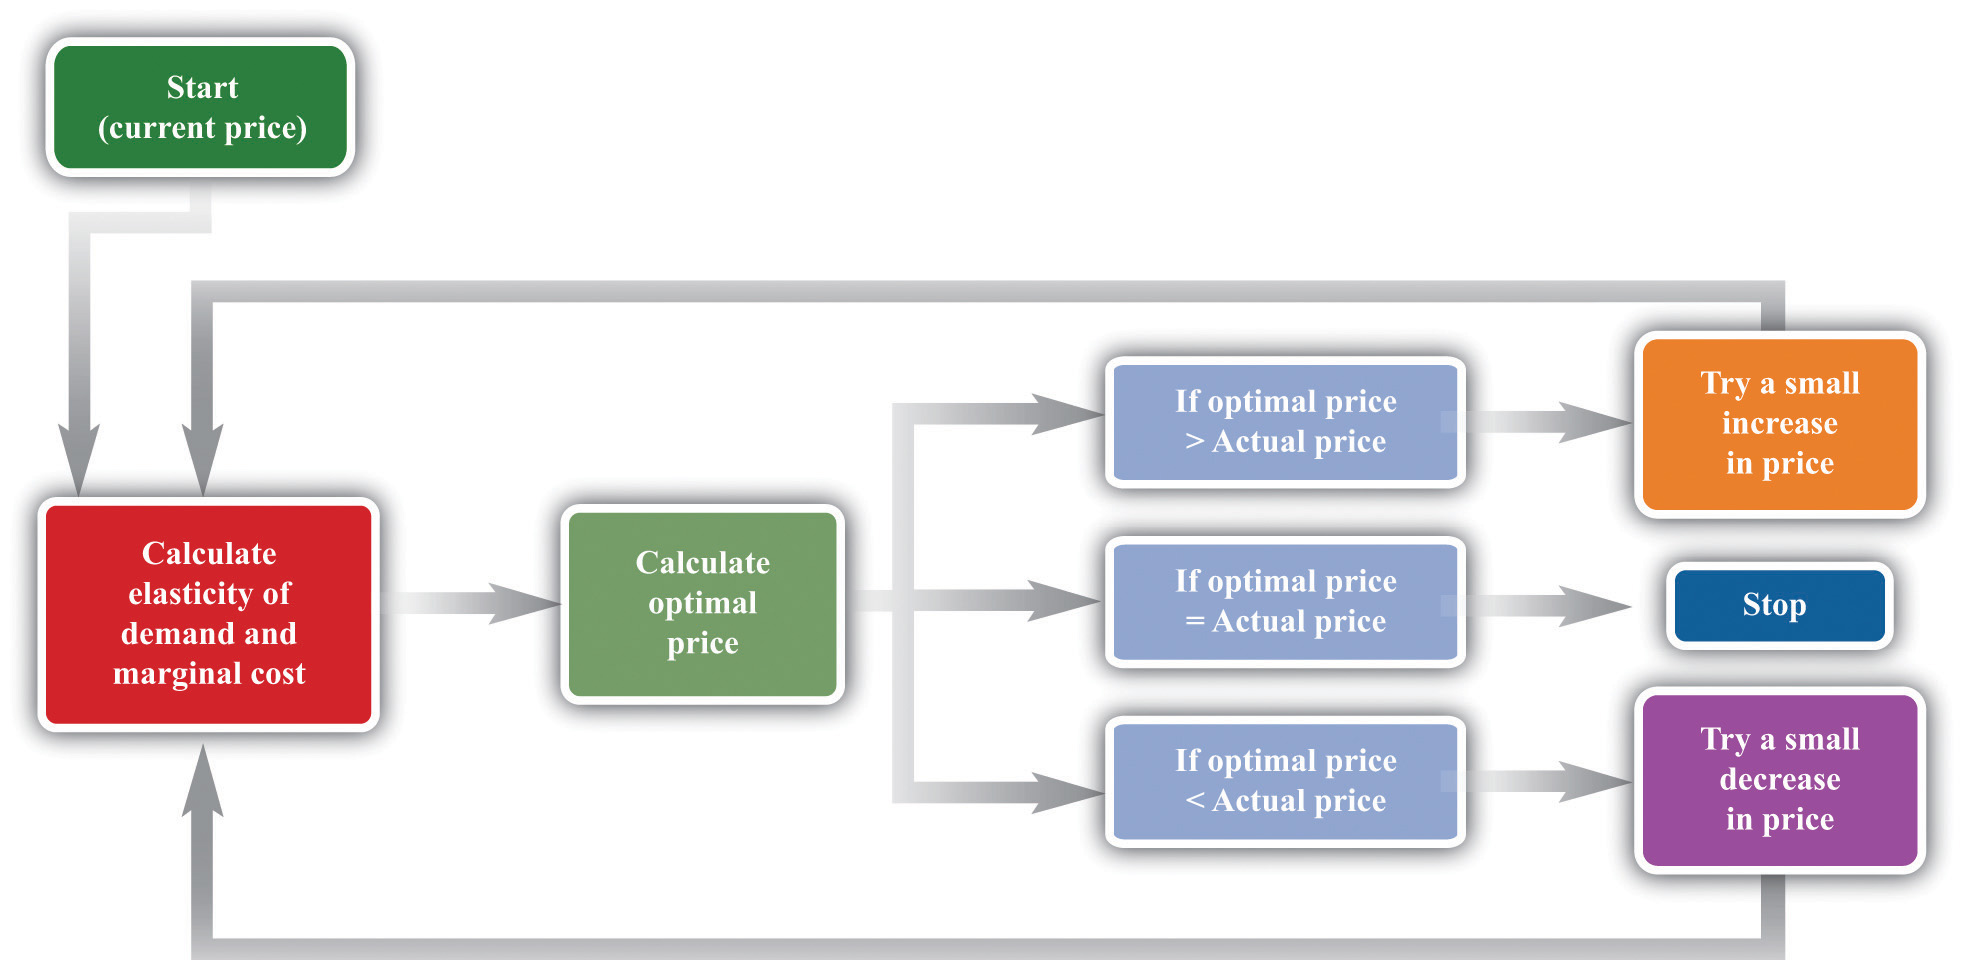 Figure 619 A Pricing Algorithm